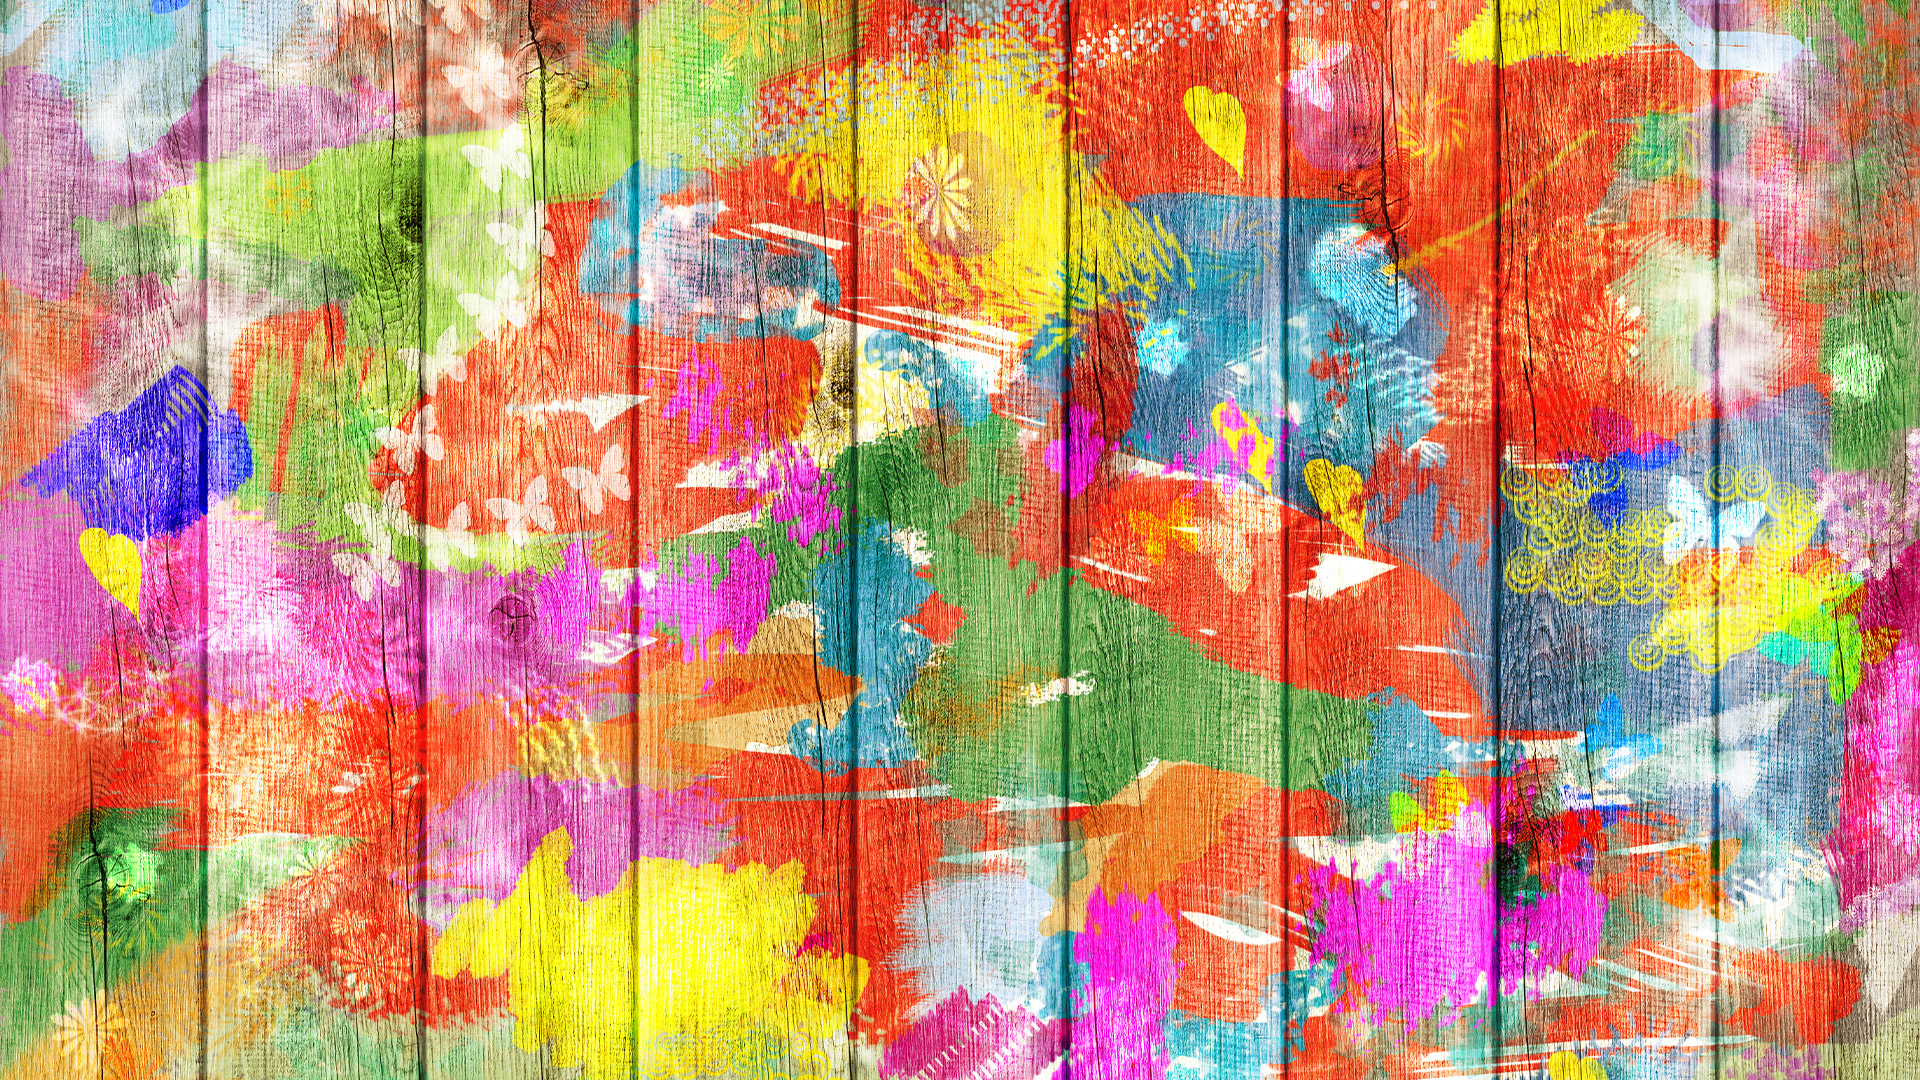 Colorful paint on boards